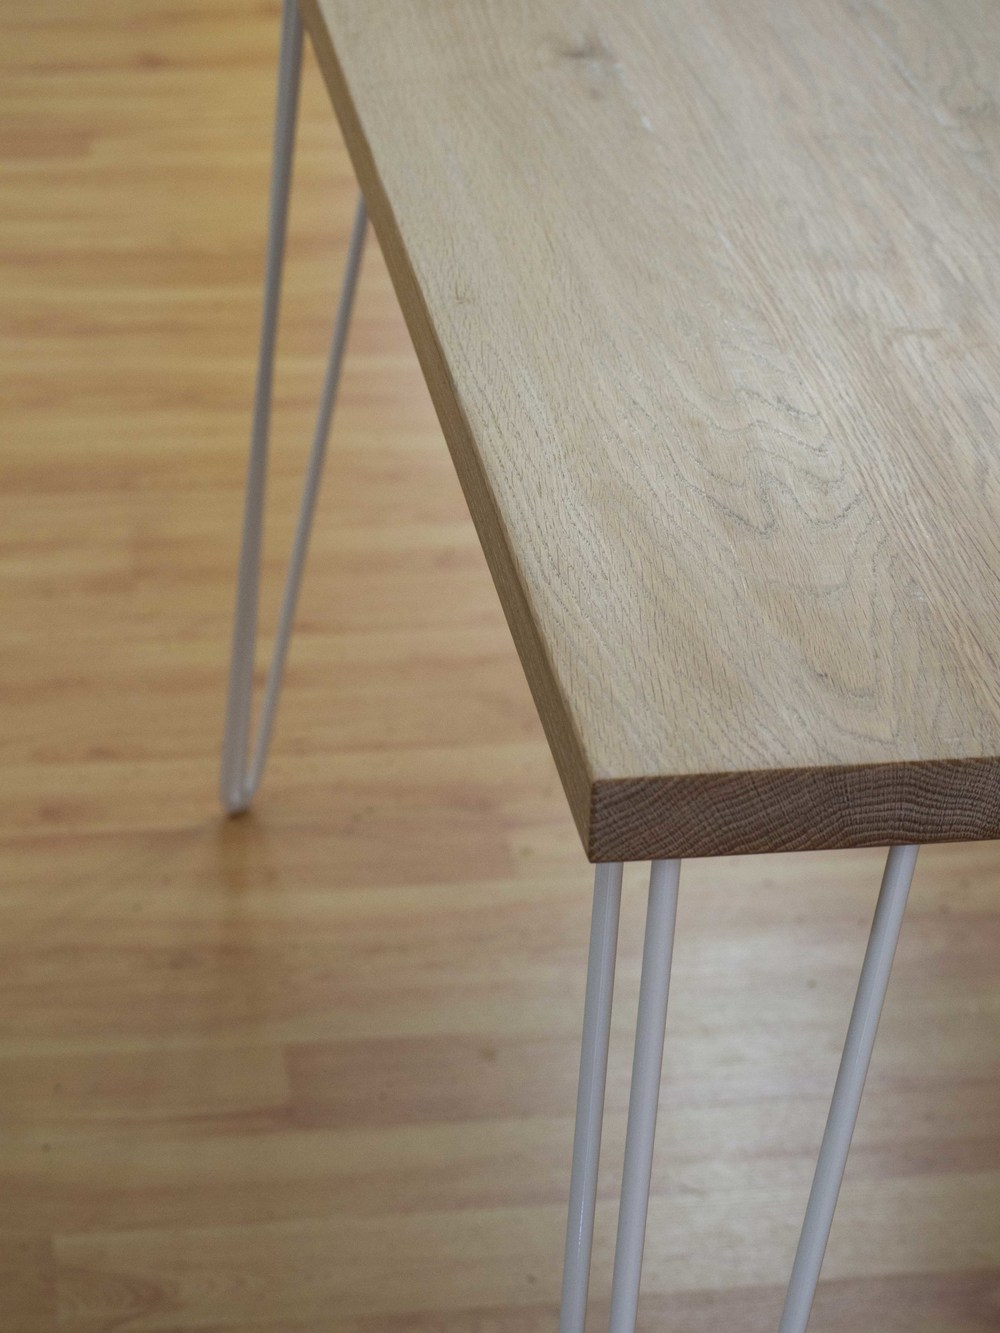 Sephanie's desk. Made with American white oak, lime finish and hair pin legs.